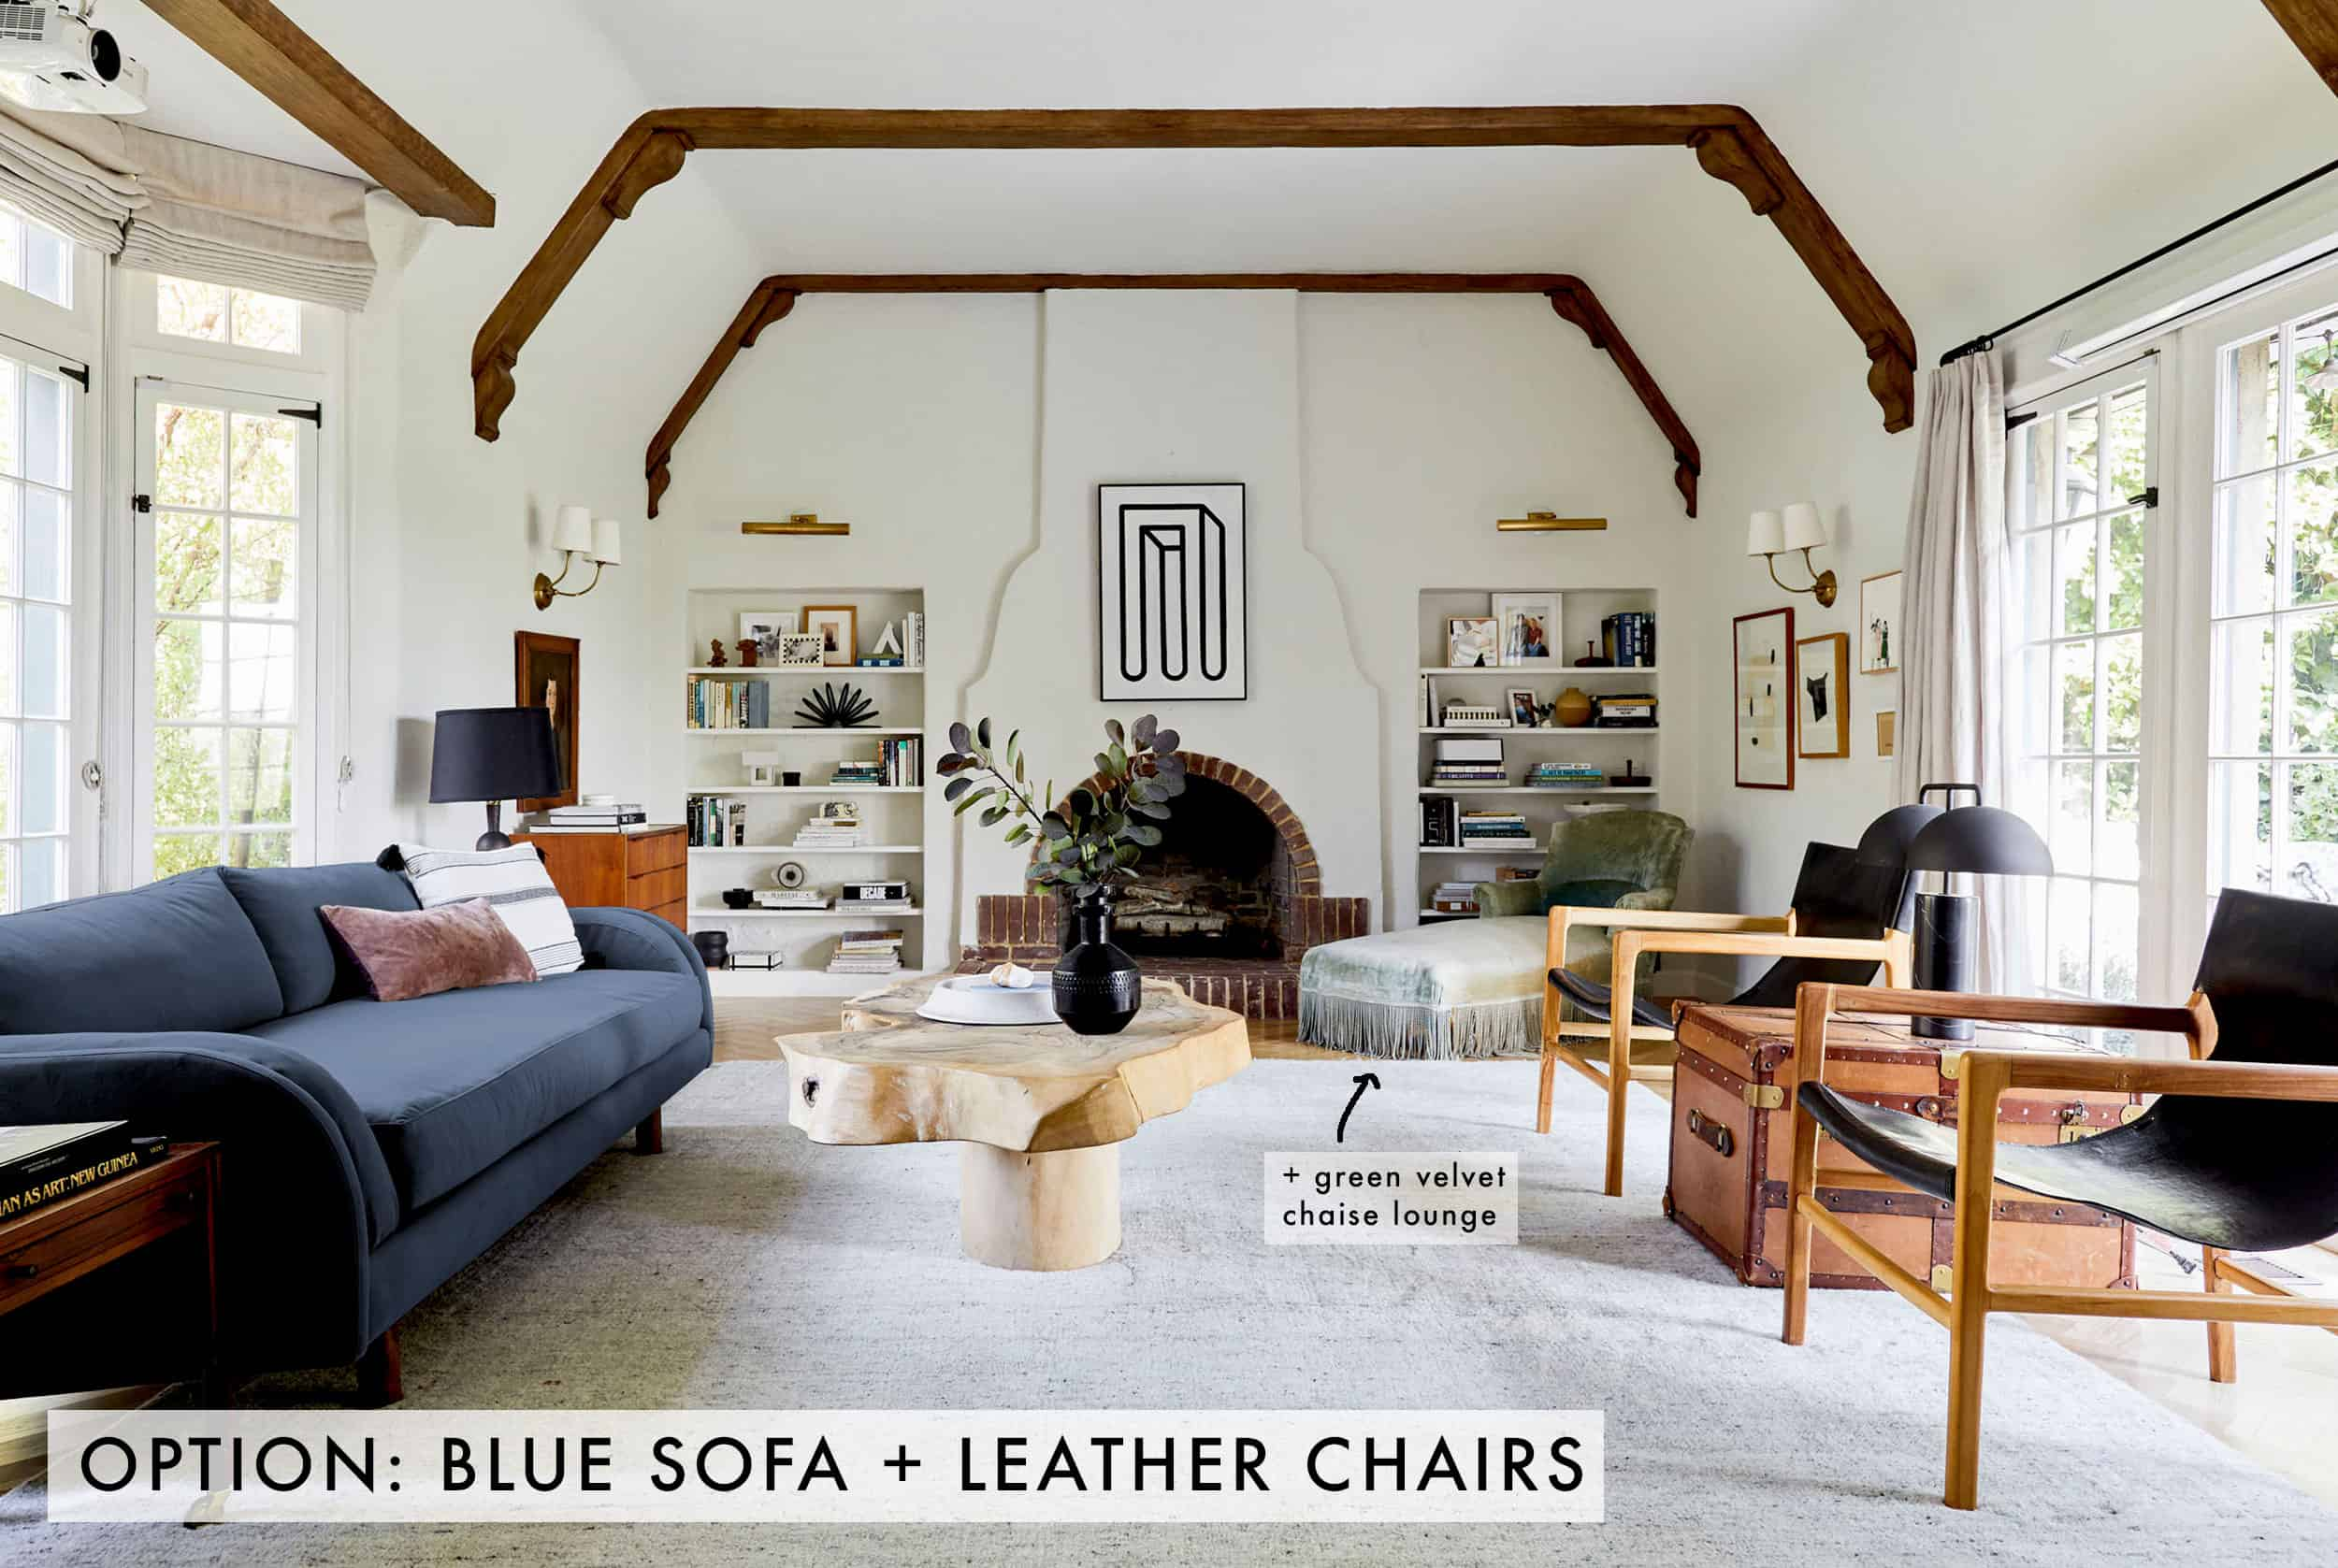 Blue Sofa + Leather Chairs